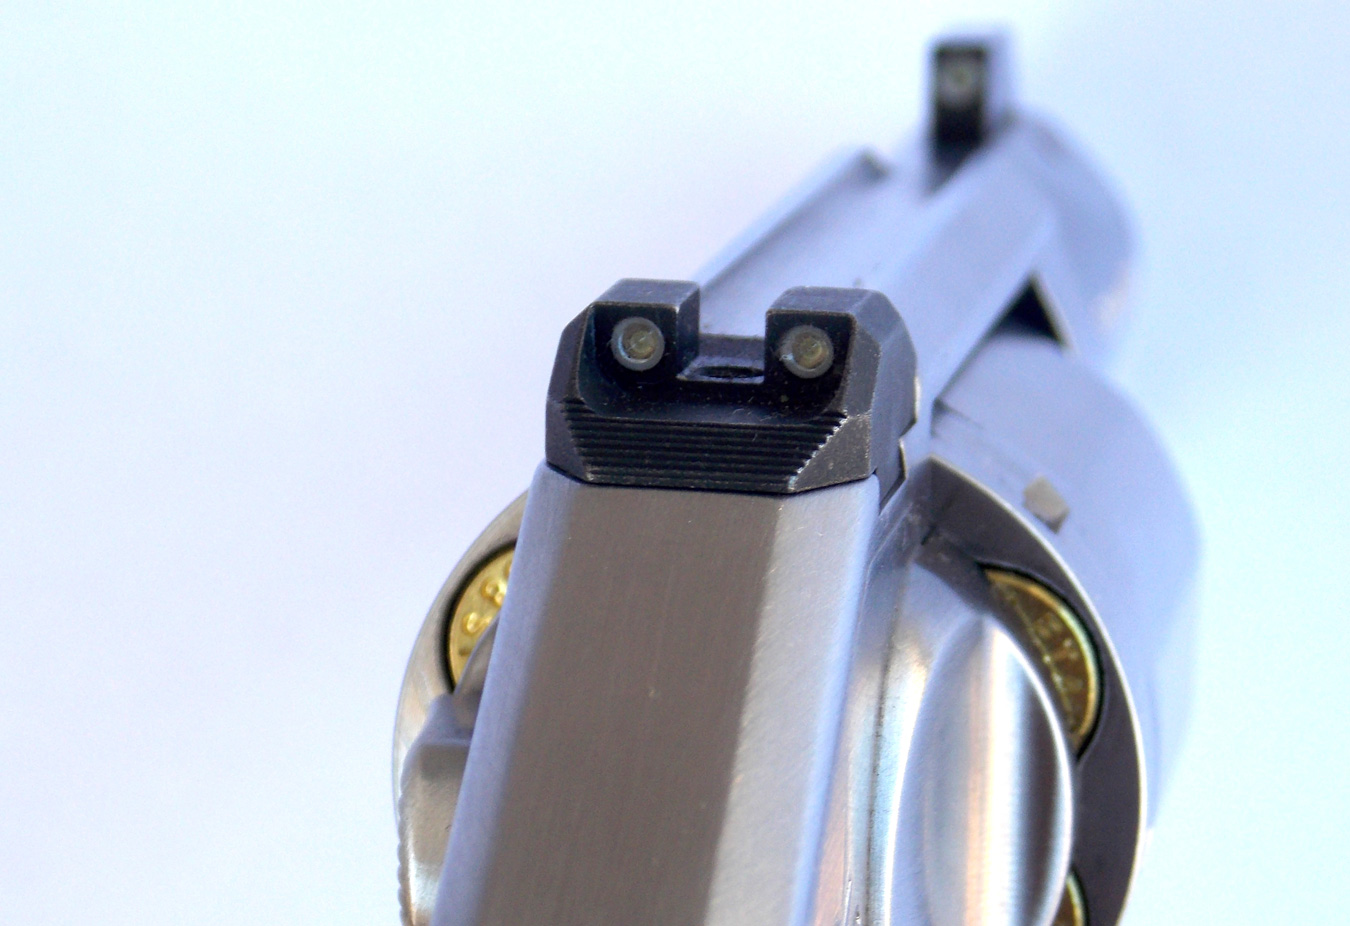 Sight picture on the Kimber K6s Revolver